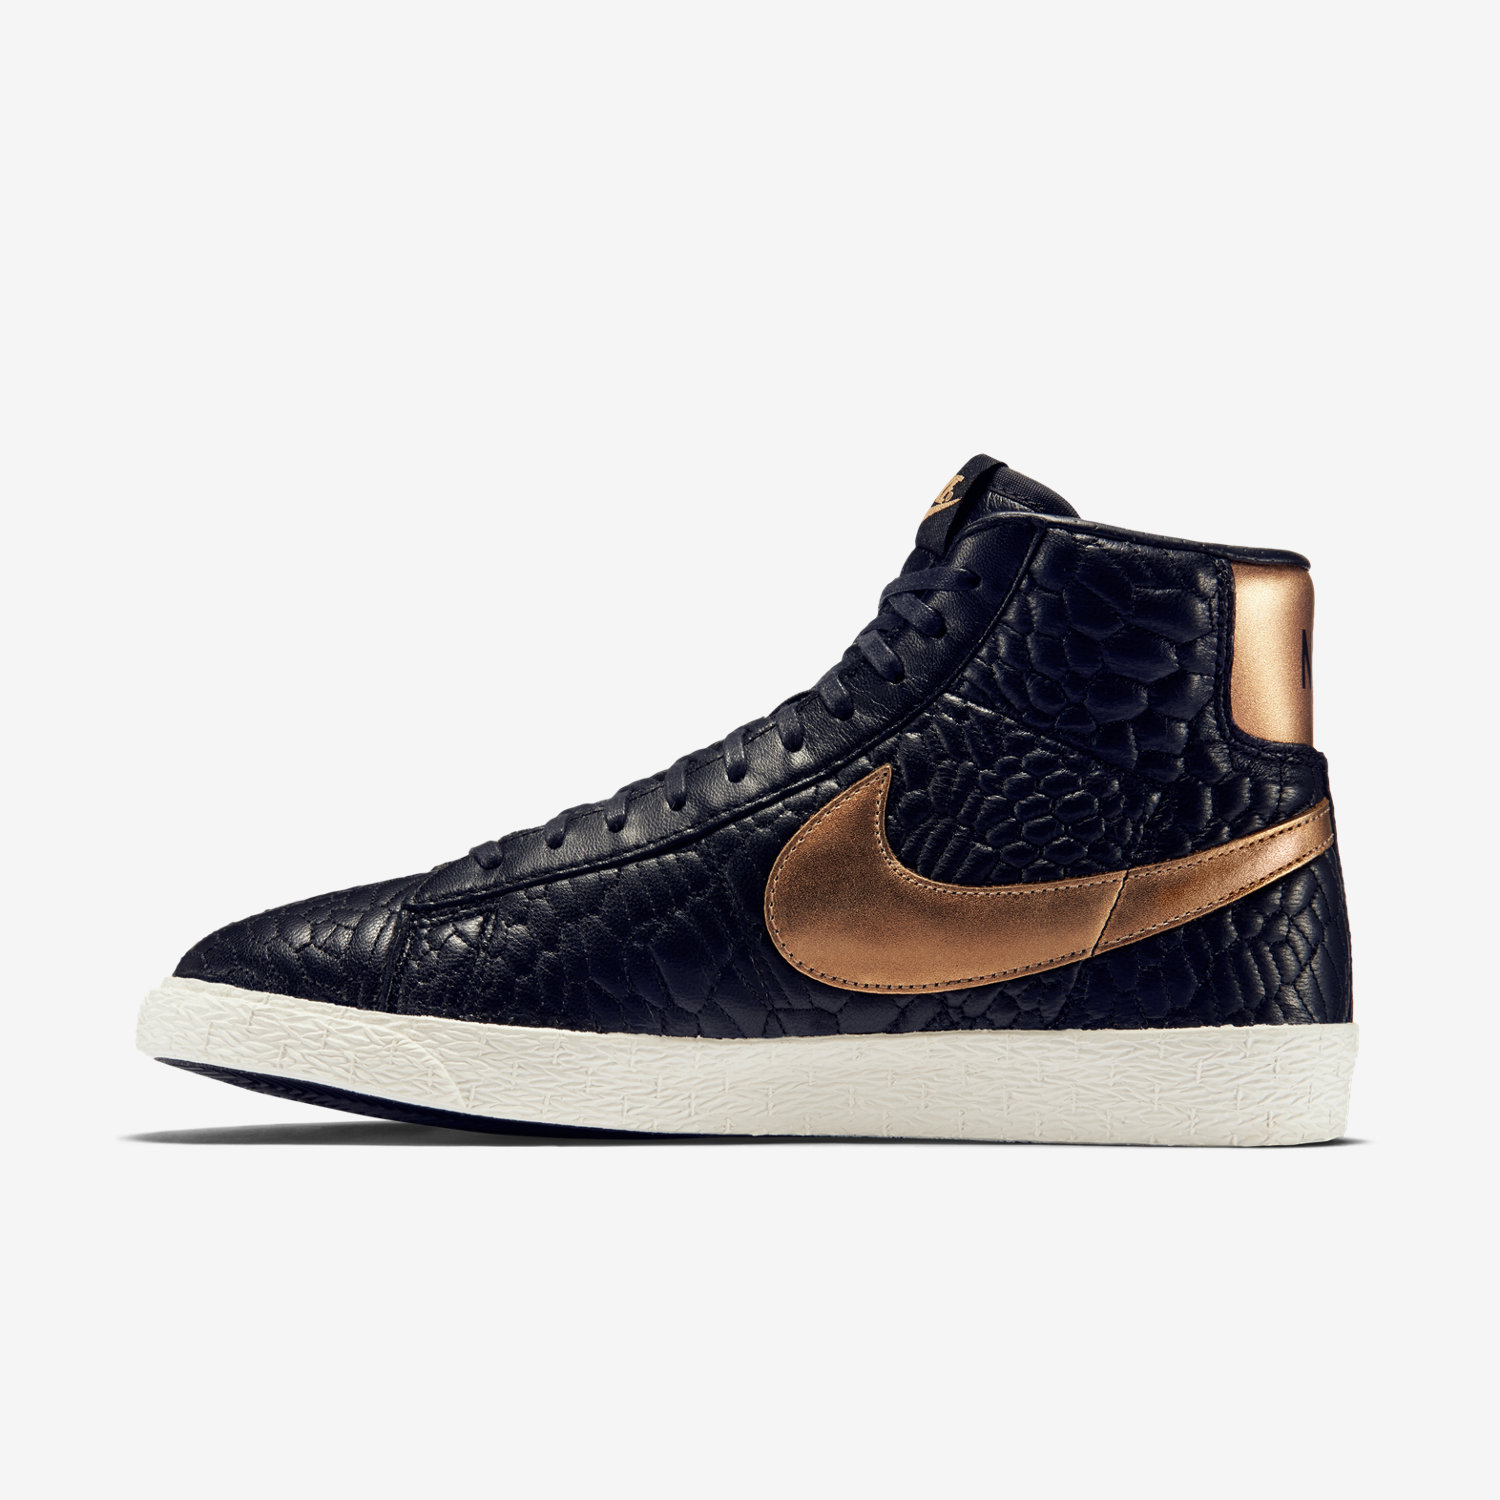 Nike Blazer Mid Leather Premium Quilted